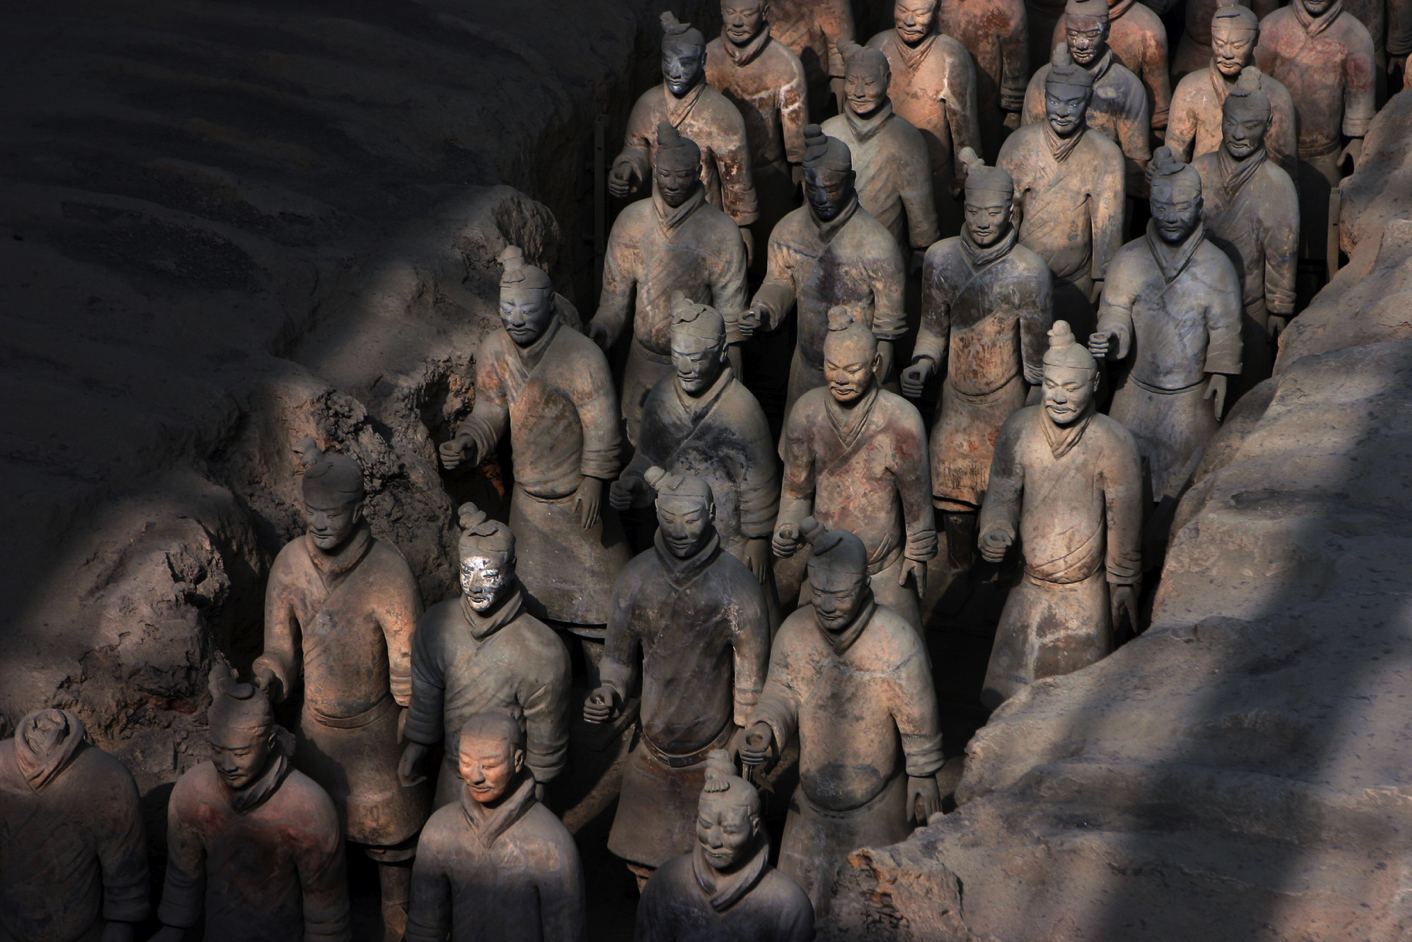 sculpture statues terracotta Army